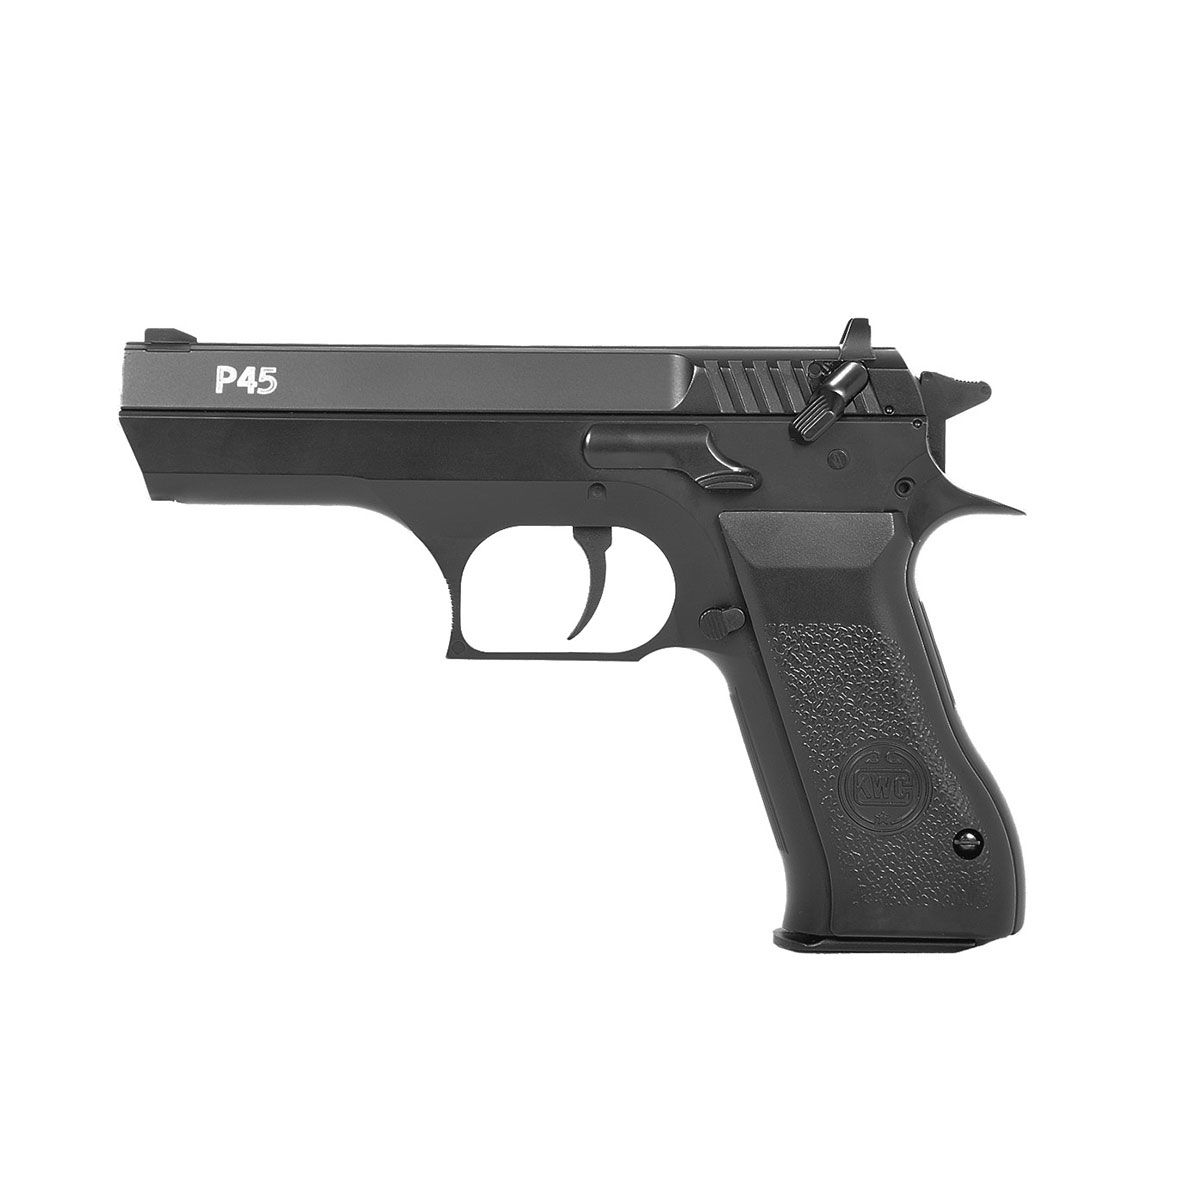 Pistola de Pressão Airsoft PCP KWC P45 Calibre 4,5mm Full Metal